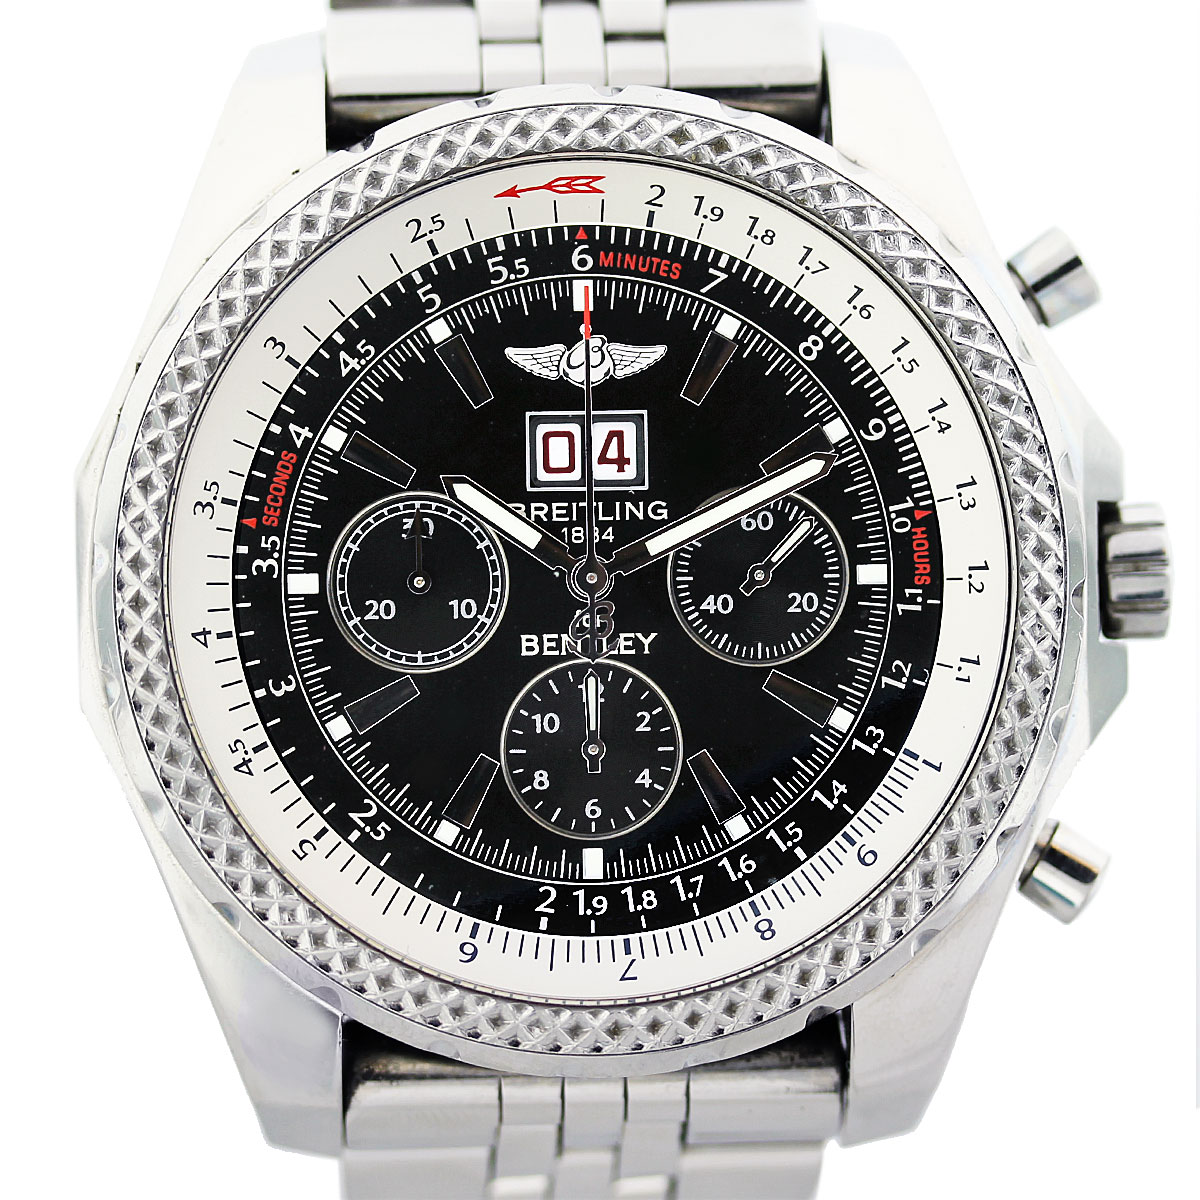 Breitling For Bentley Infos Price History: Breitling For Bentley 6.75 A44362 Mens Automatic Watch